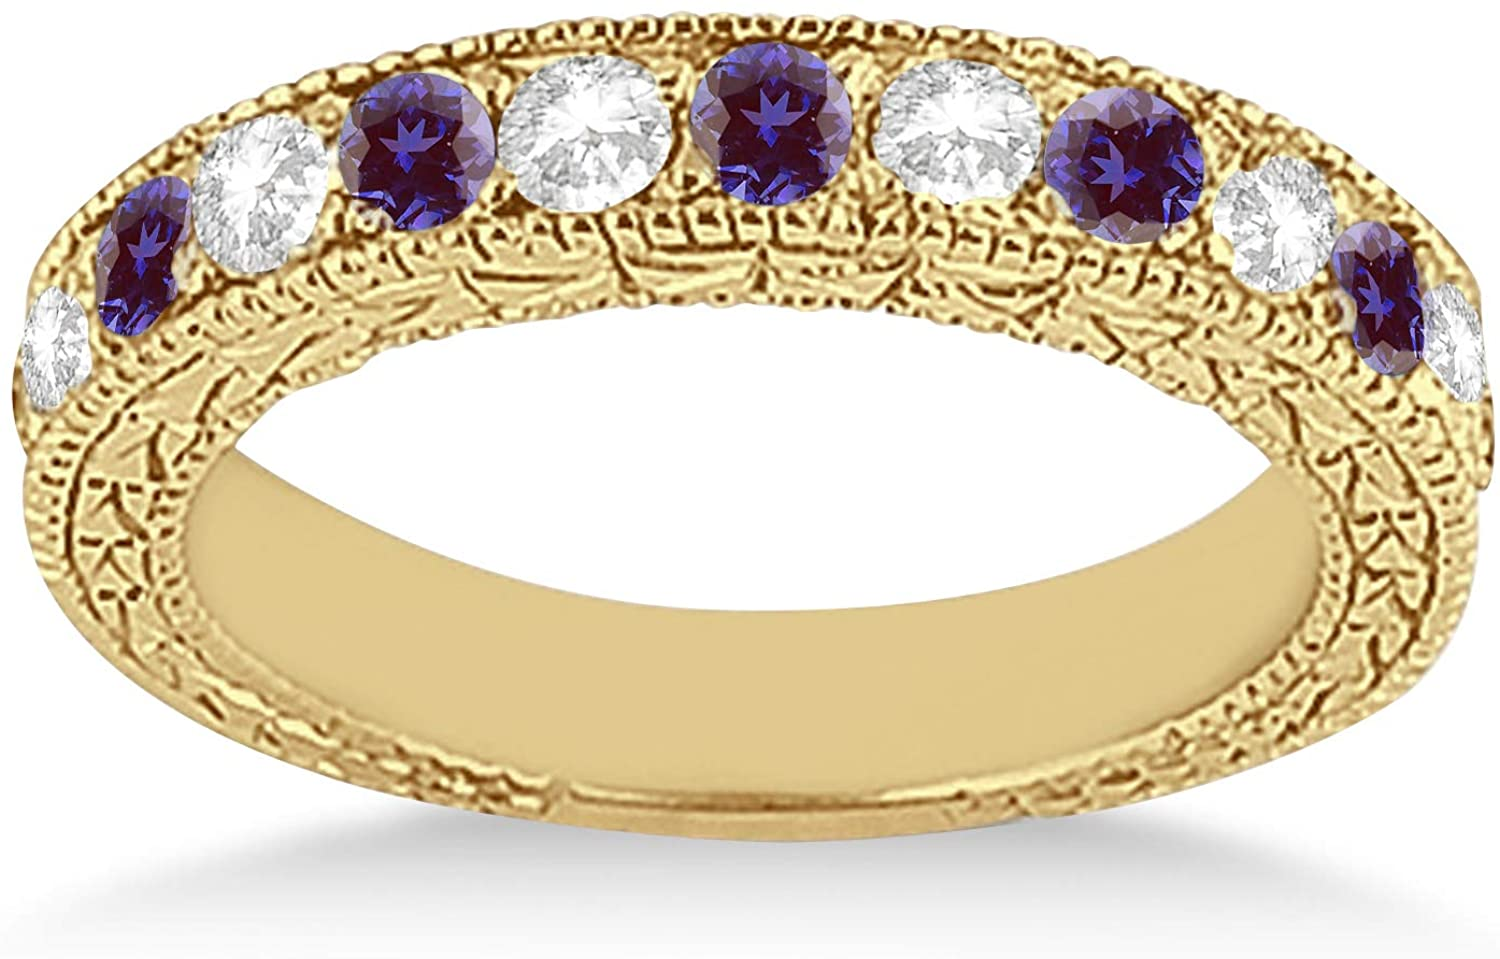 18k Gold Heirloom Diamond and Lab Alexandrite Wedding Ring Band Antique Anniversary Band (1.05ct) GH/VS